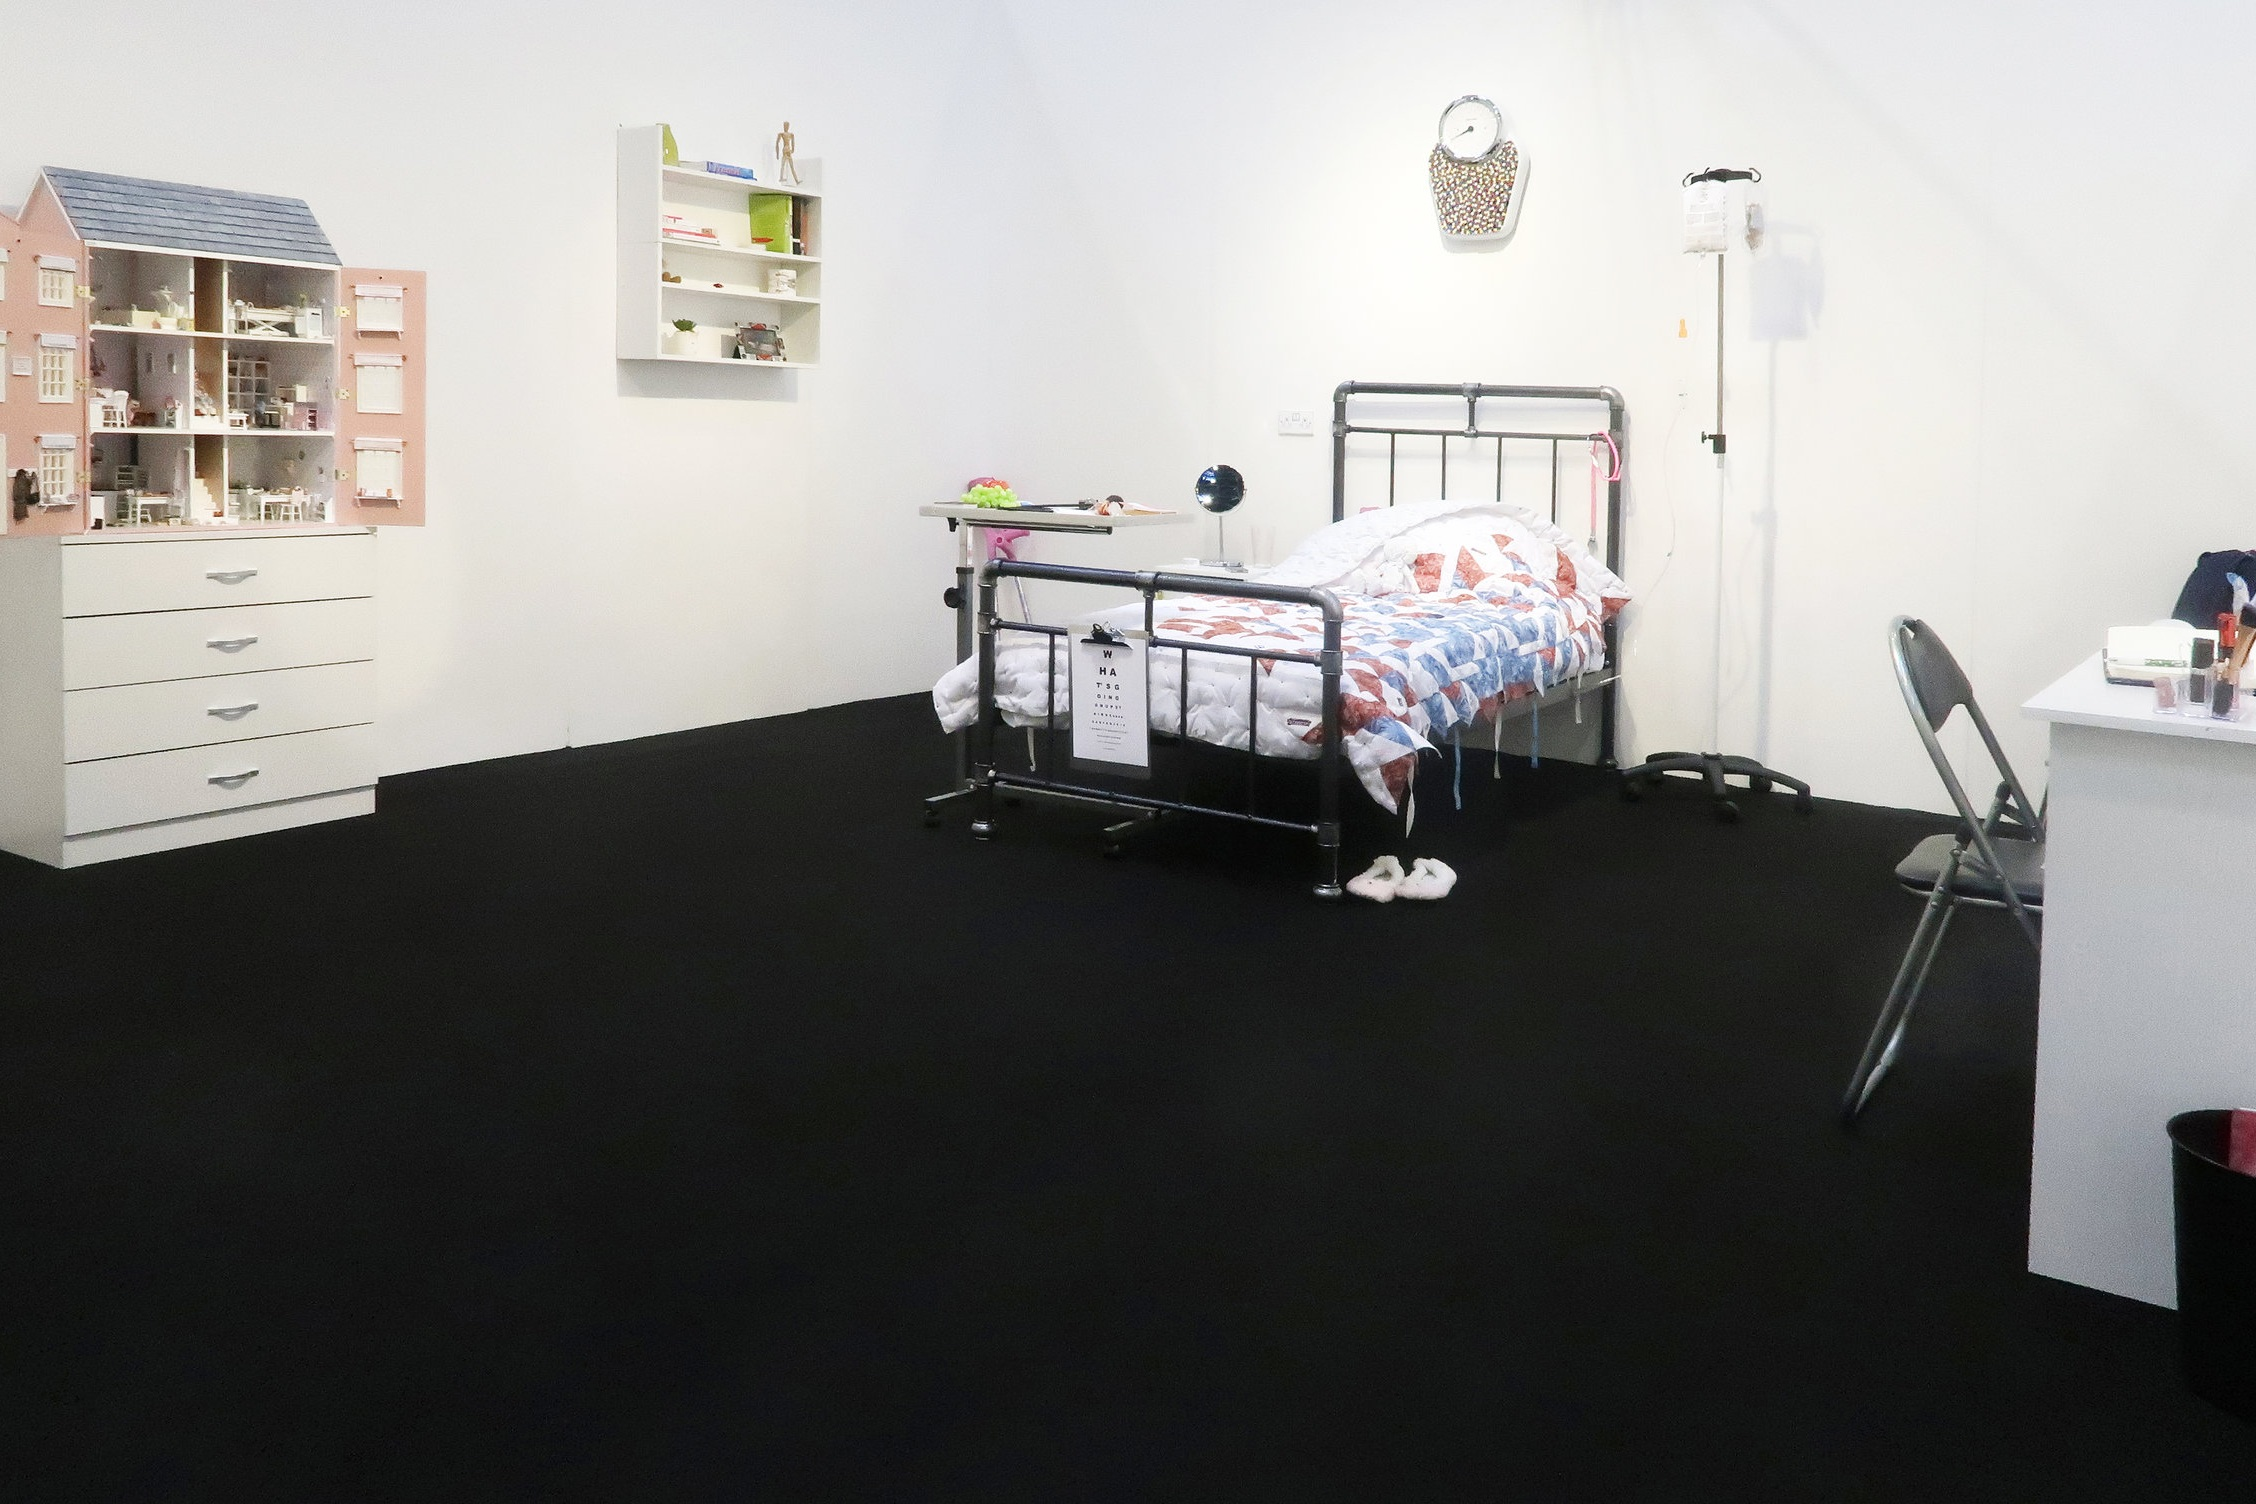 What's Going On Upstairs, 2018 - Installation